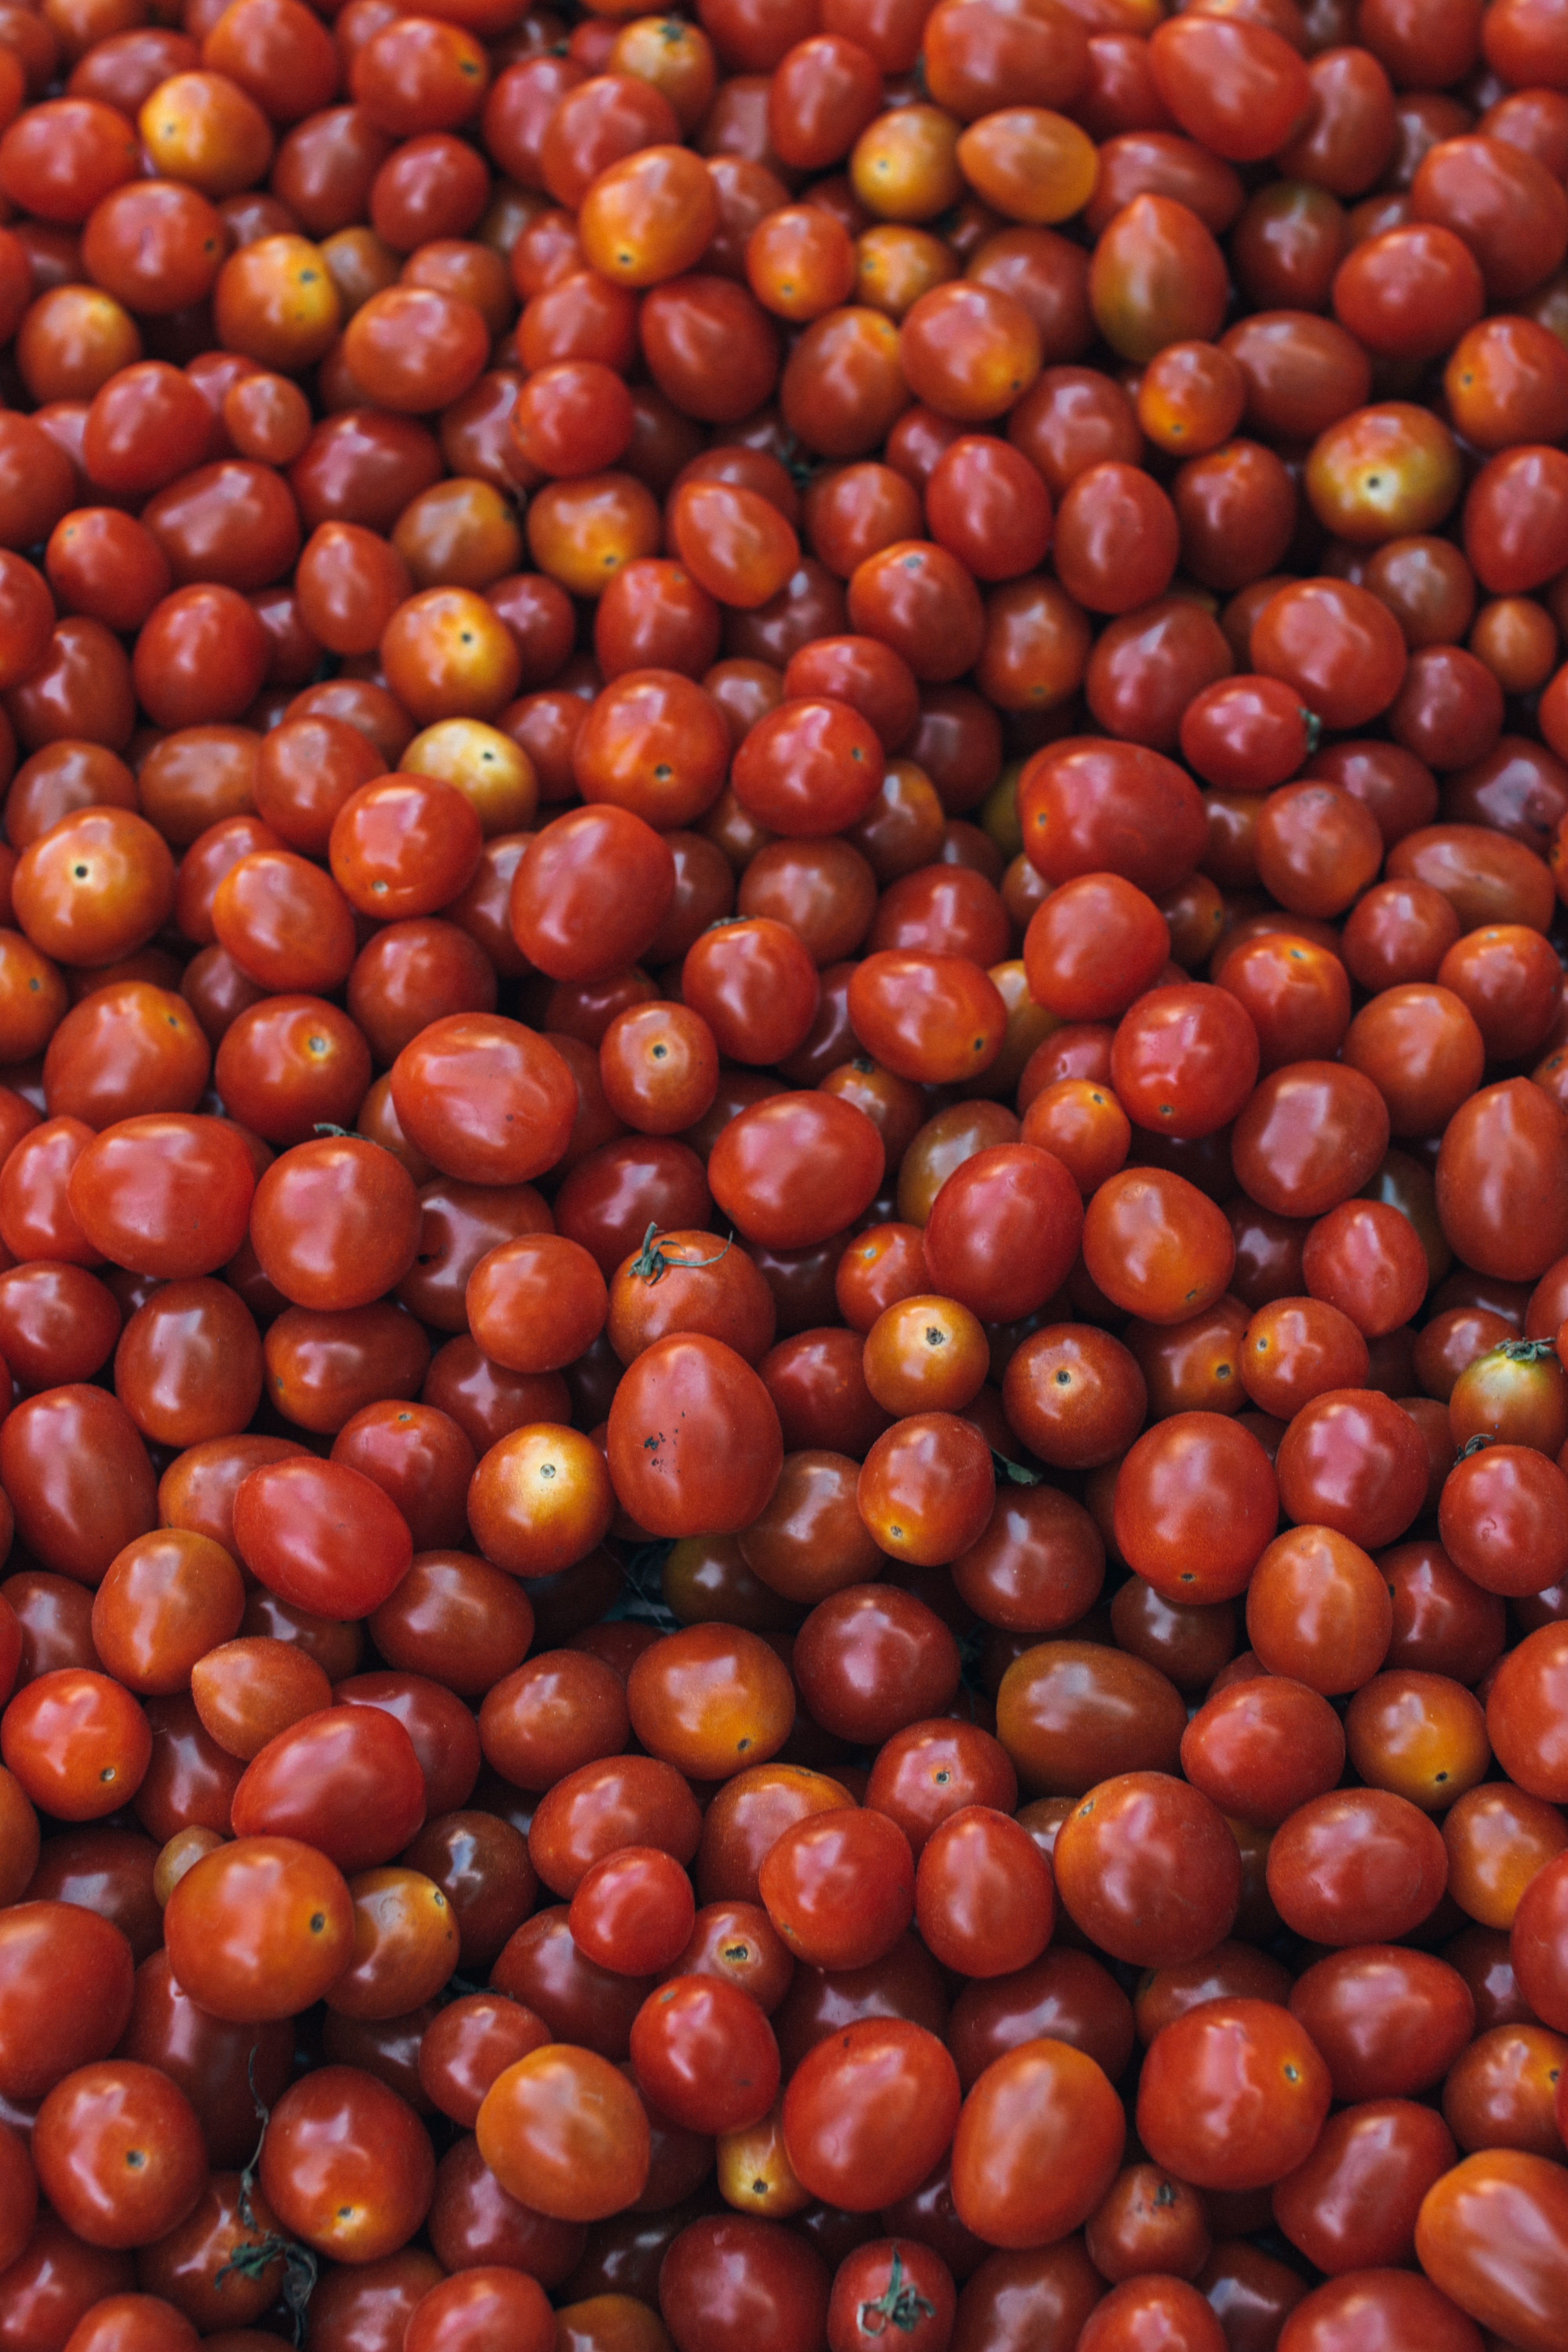 bunch of round red fruit